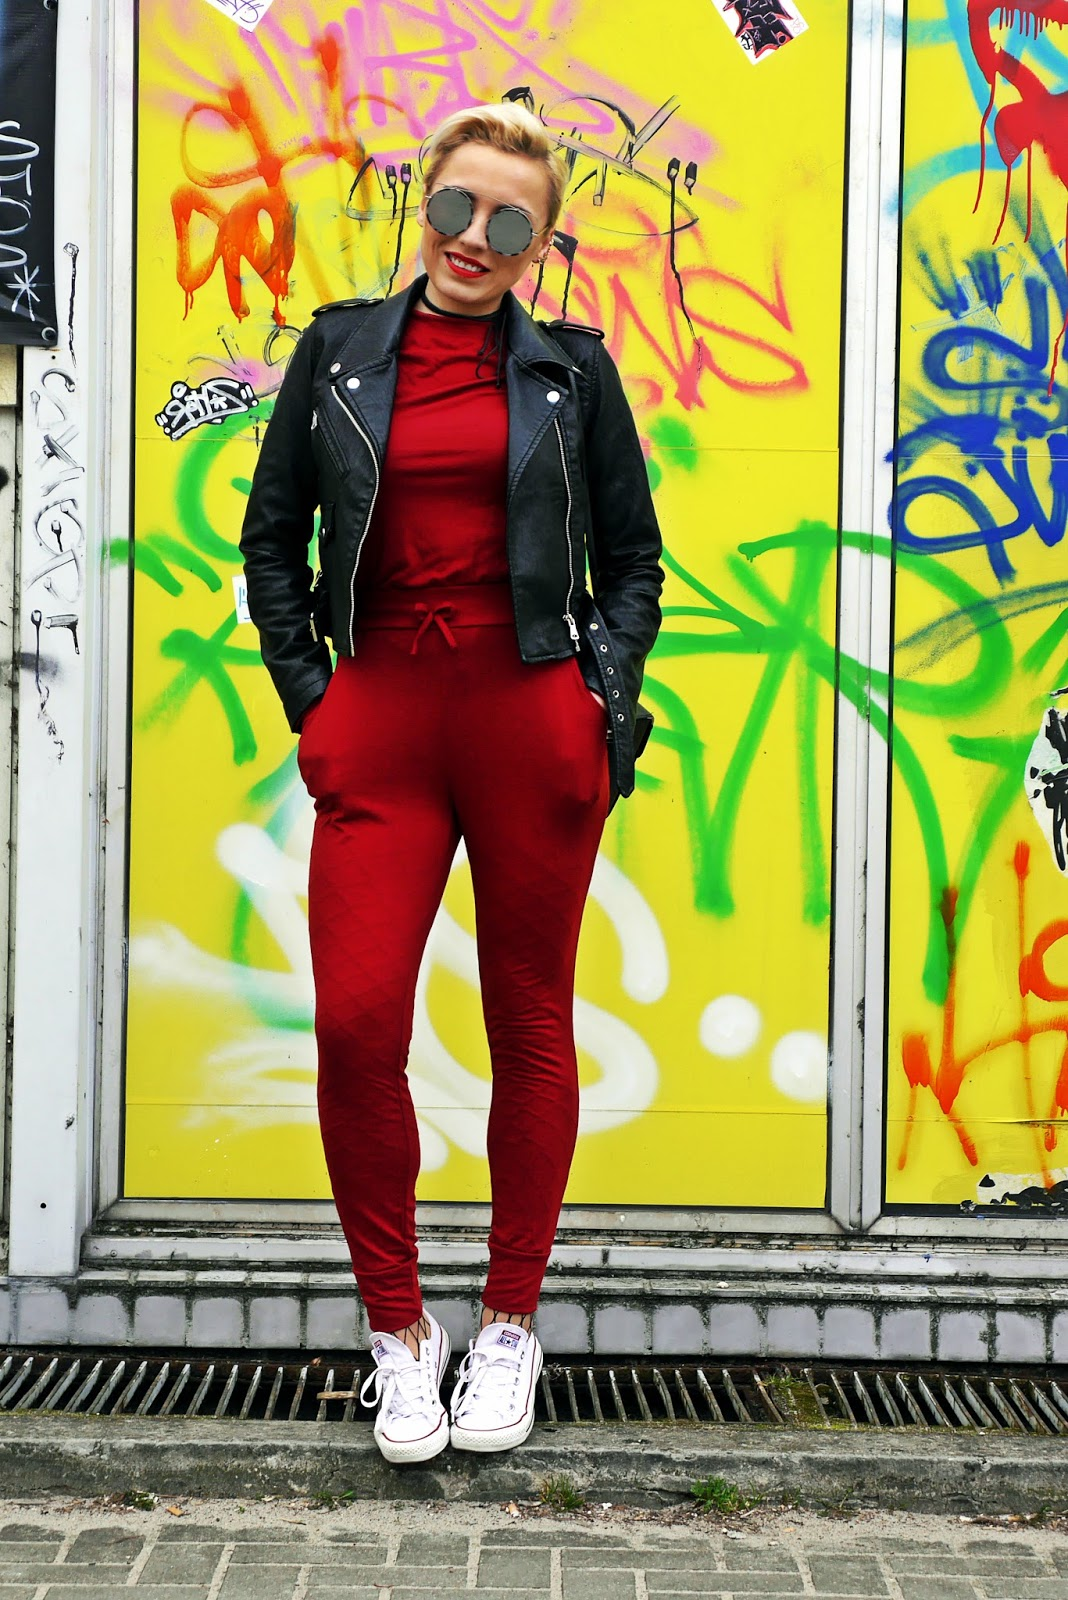 burgundy_jampsuit_black_biker_jacket_ootd_look_karyn_blog_280317d